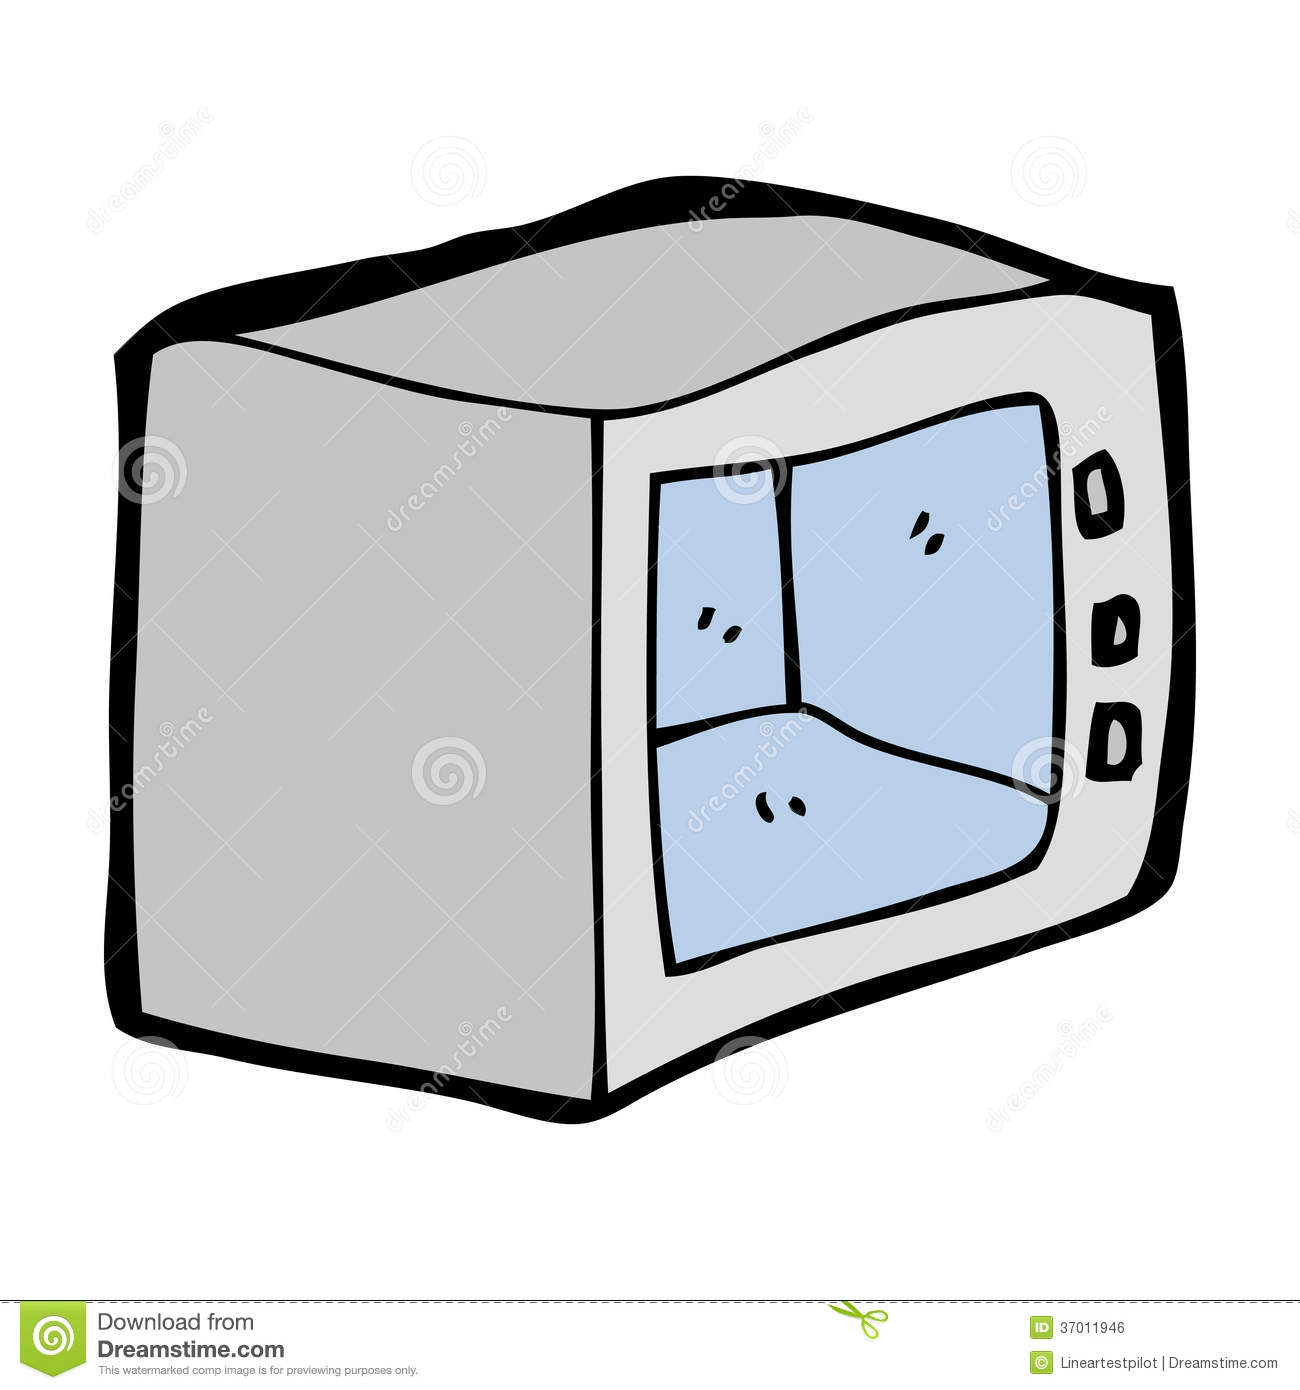 Cartoon Microwave Oven ~ Cartoon microwave royalty free stock image